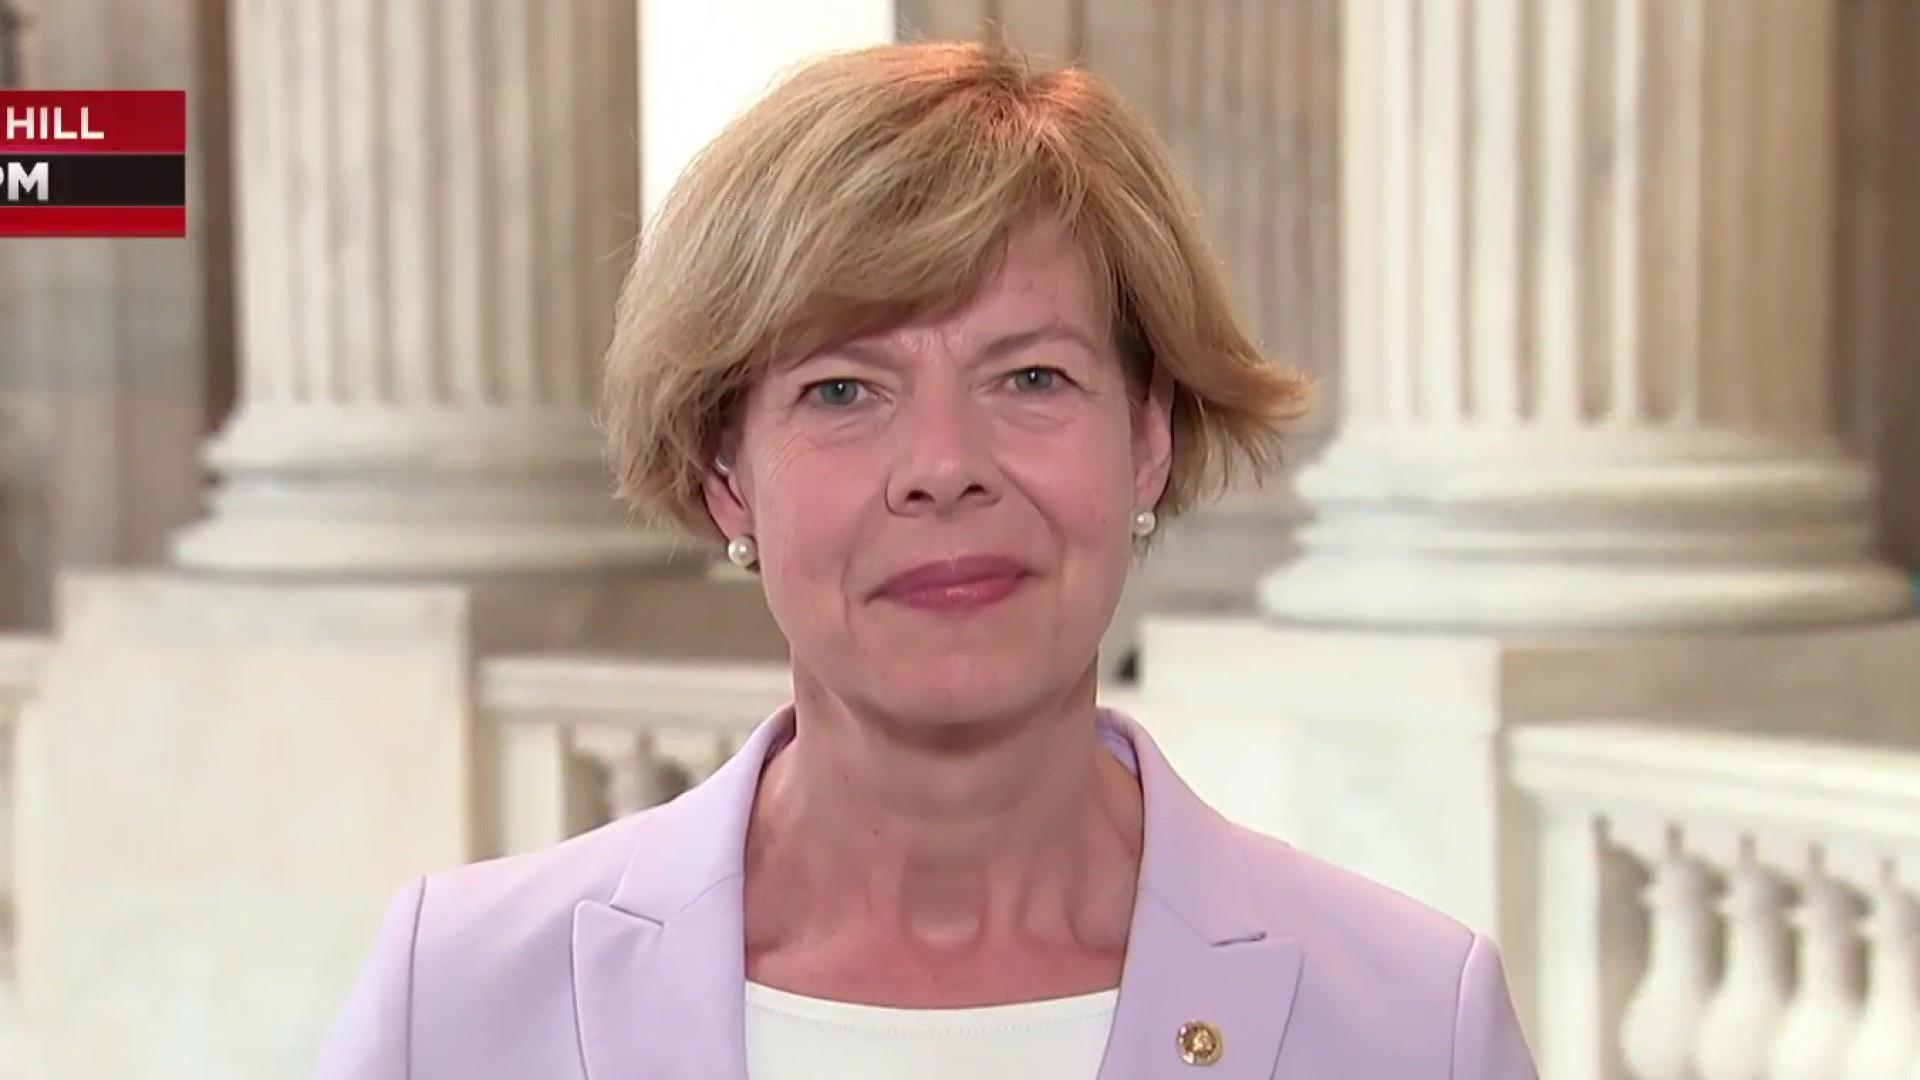 Sen. Baldwin: Trump doesn't understand these families' lives